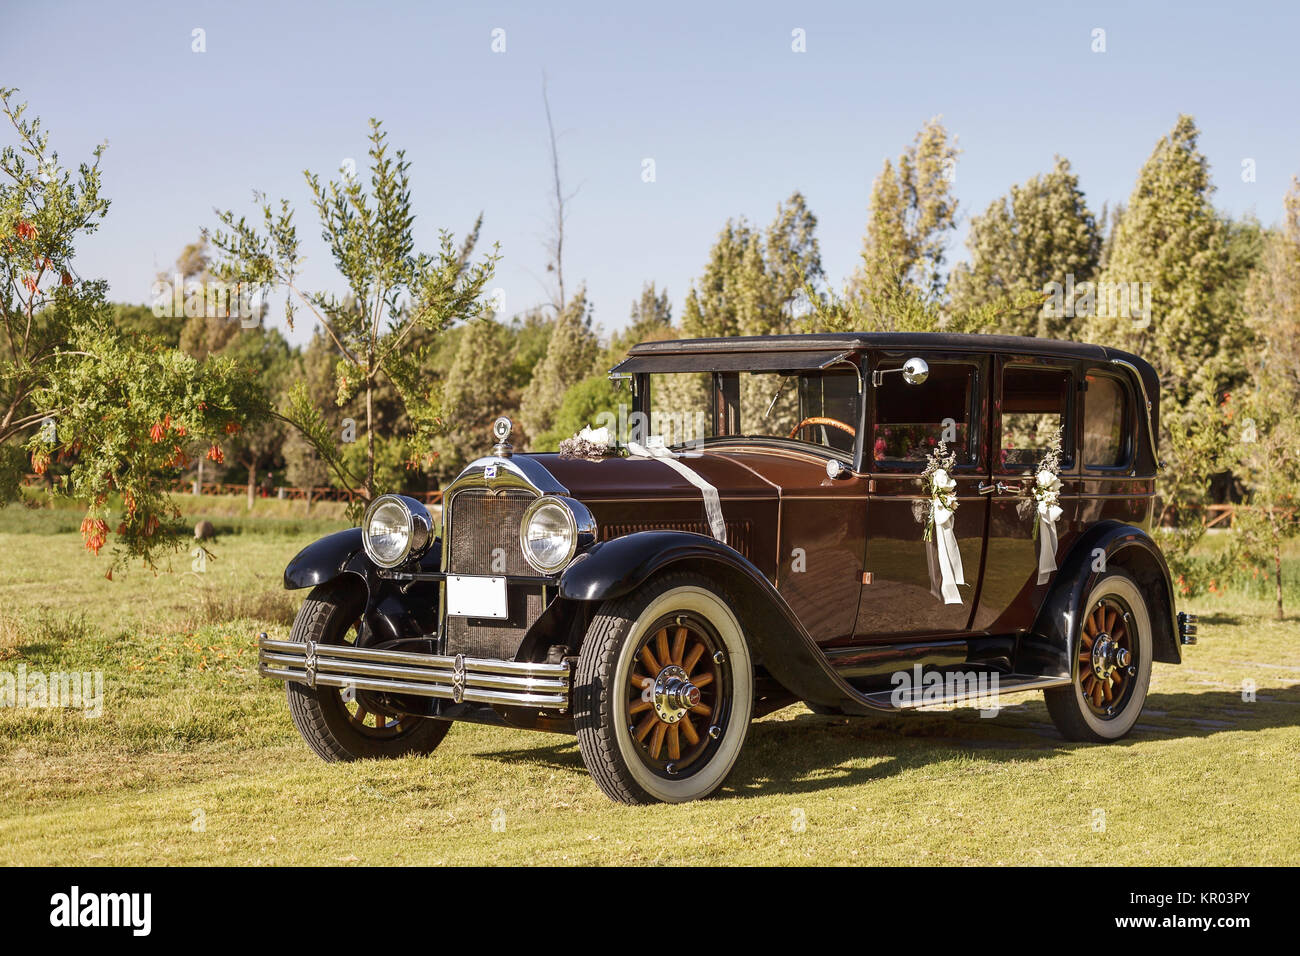 Vintage Wedding Car Decorated with Flowers Stock Photo: 169033395 ...